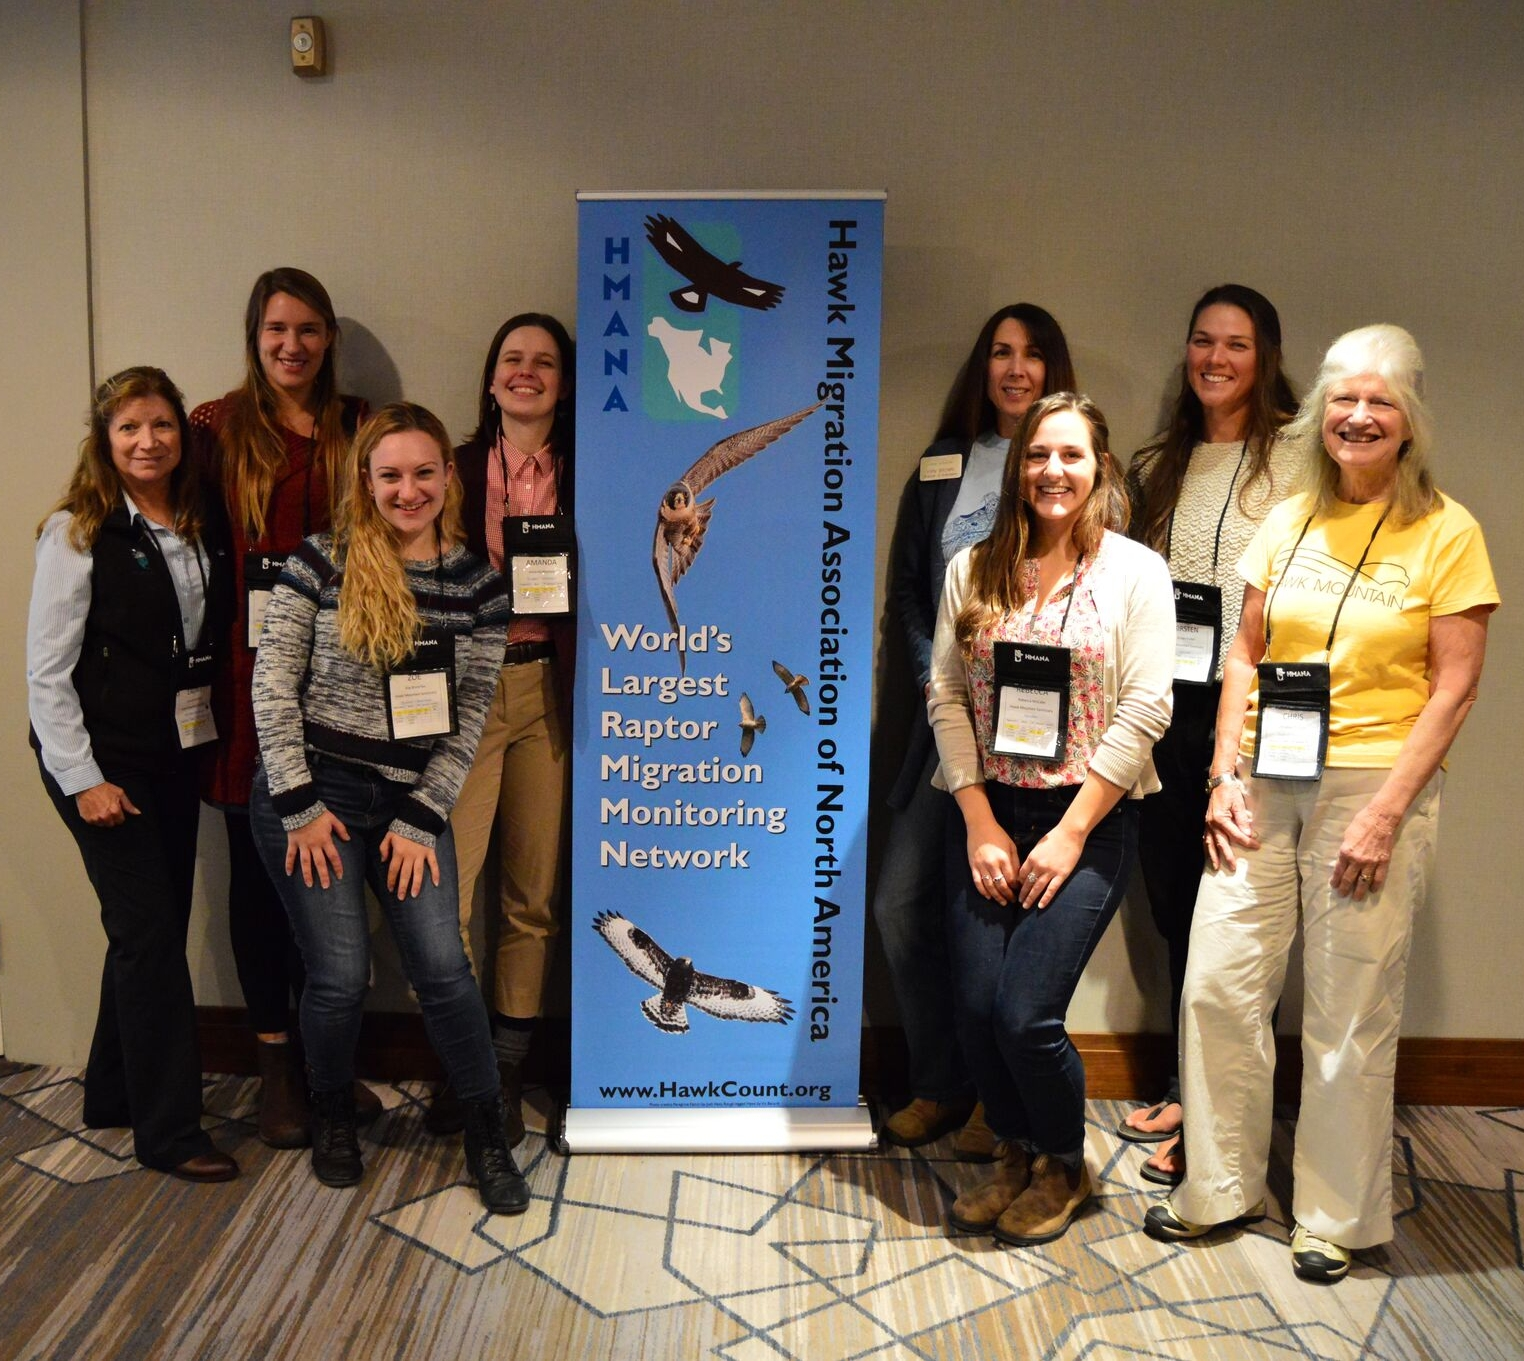 Zoe (front left) joined by fellow Hawk Mountain staff, trainees, and board at the HMANA 2018 Conference.